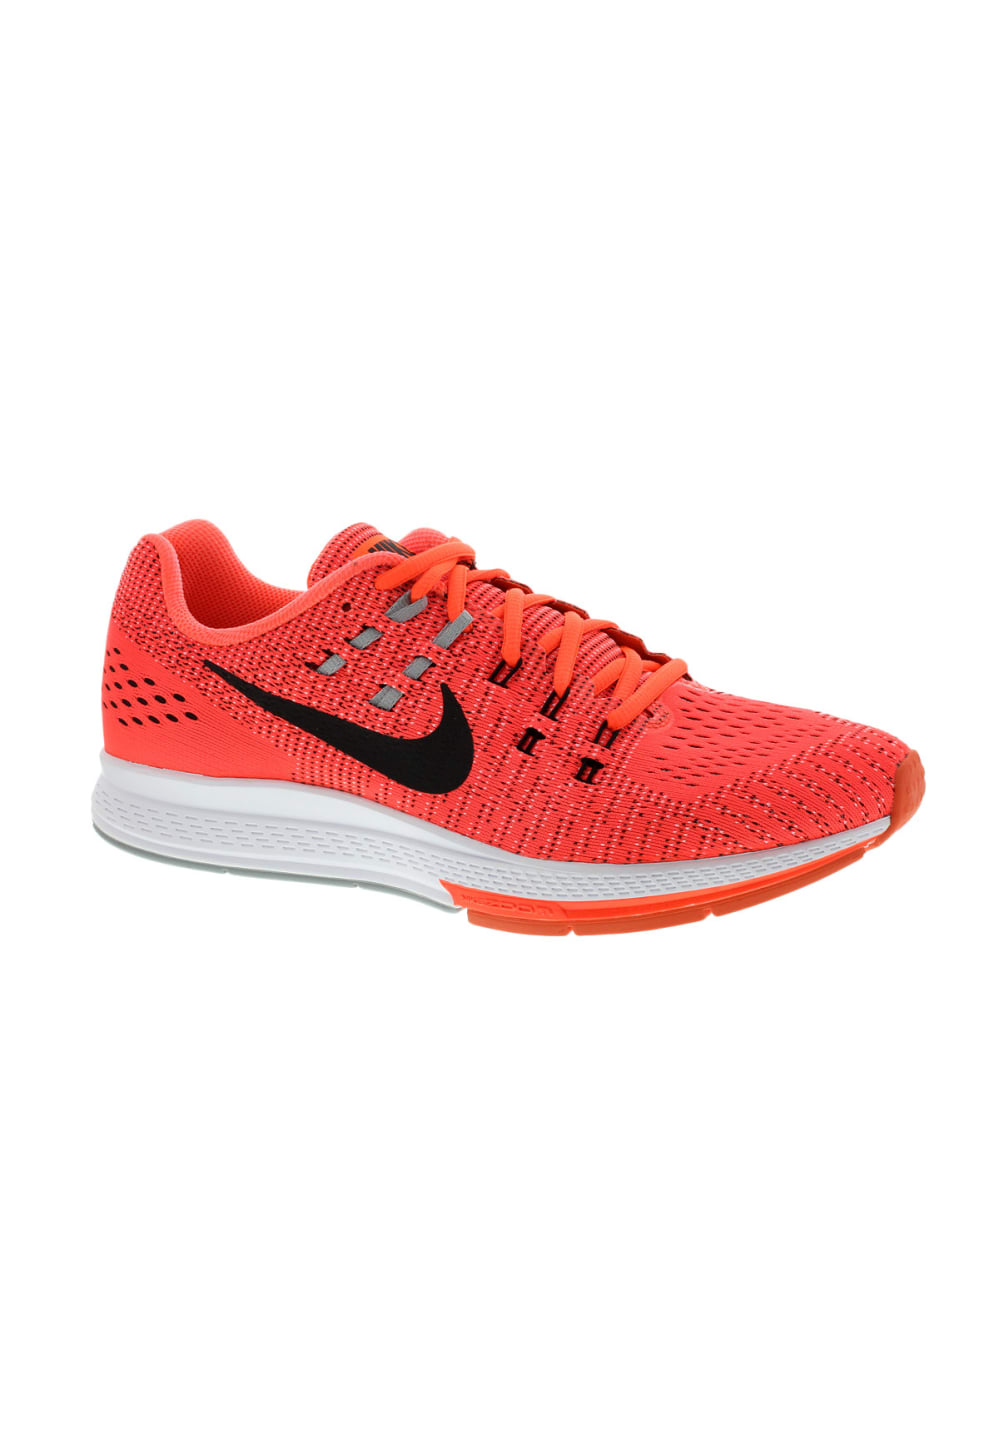 classic fit 3e70b 6c709 Nike Air Zoom Structure 19 Running Shoe - Running shoes for Men - Red